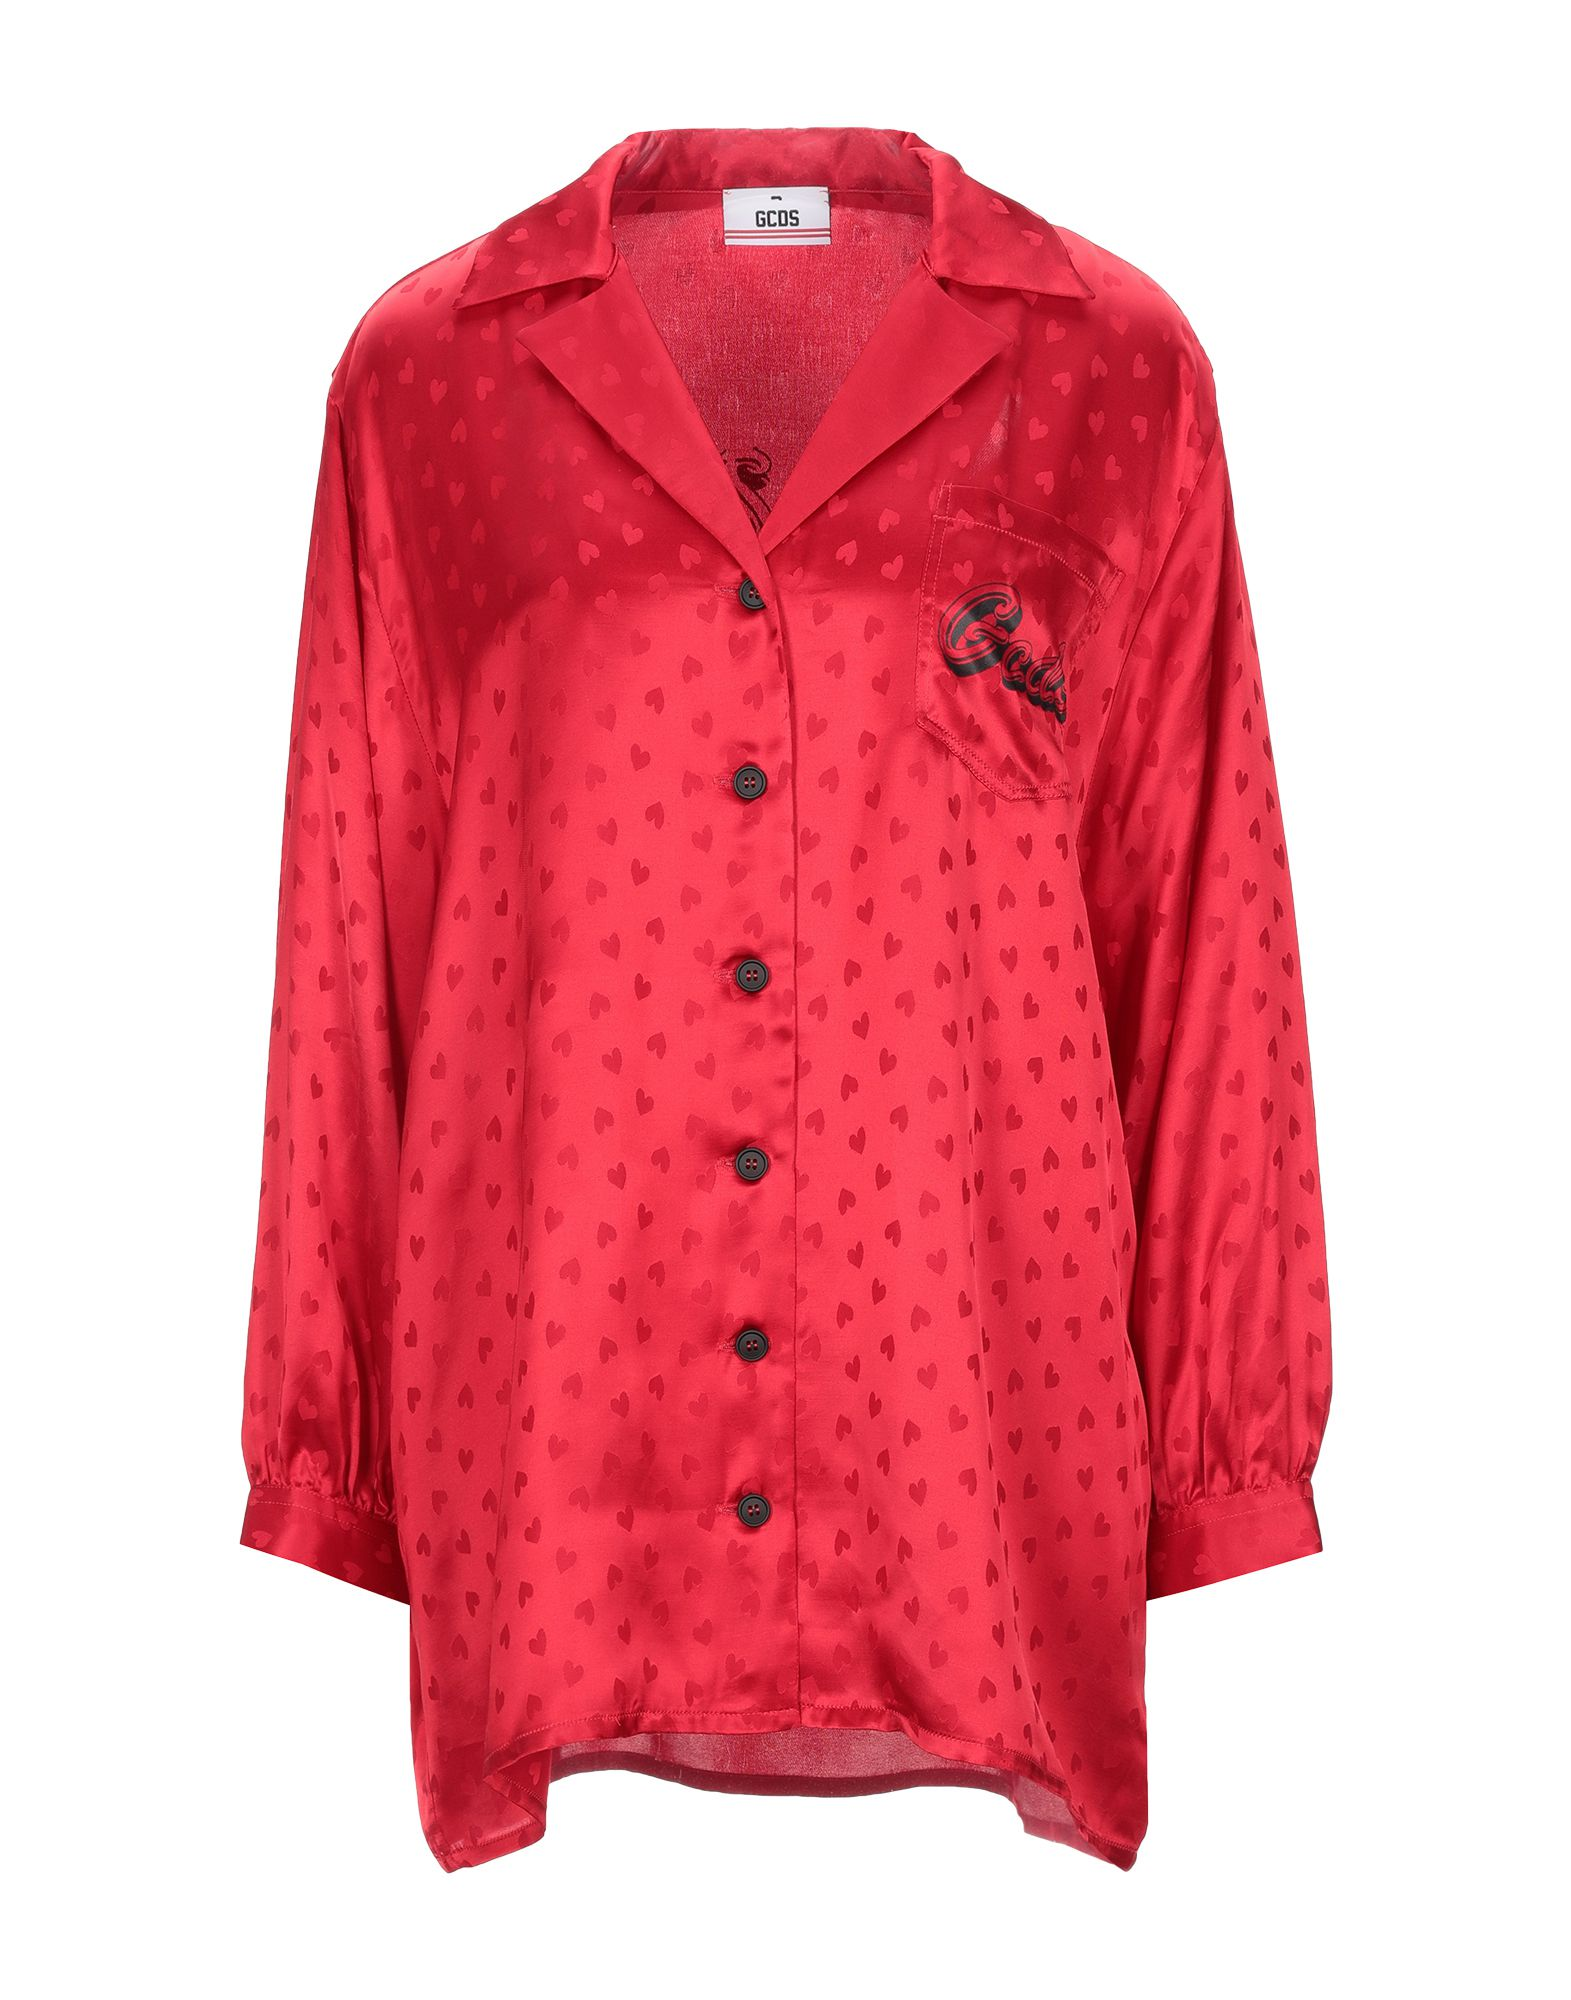 GCDS Shirts. jacquard, satin, logo, print, solid color, front closure, button closing, 3/4 length sleeves, buttoned cuffs, lapel collar, single chest pocket. 100% Viscose